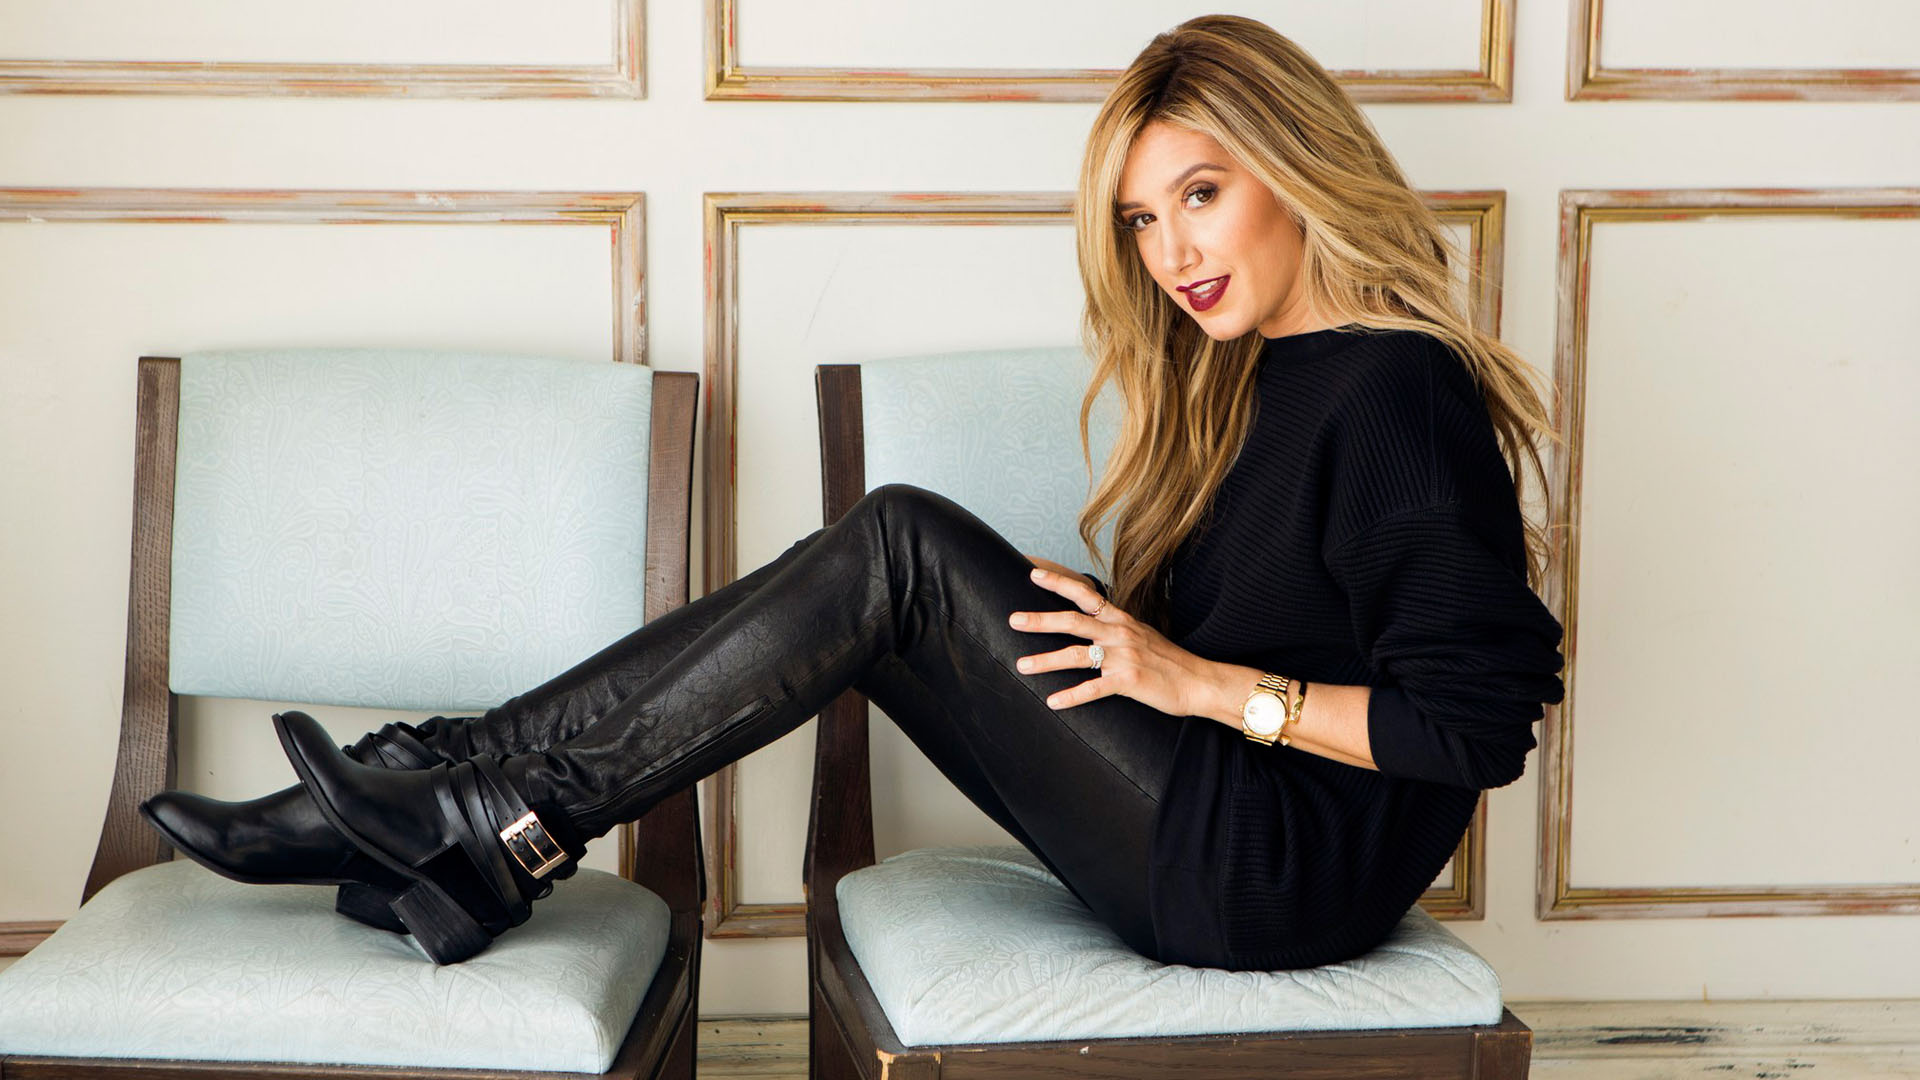 1920x1080 - Ashley Tisdale Wallpapers 5